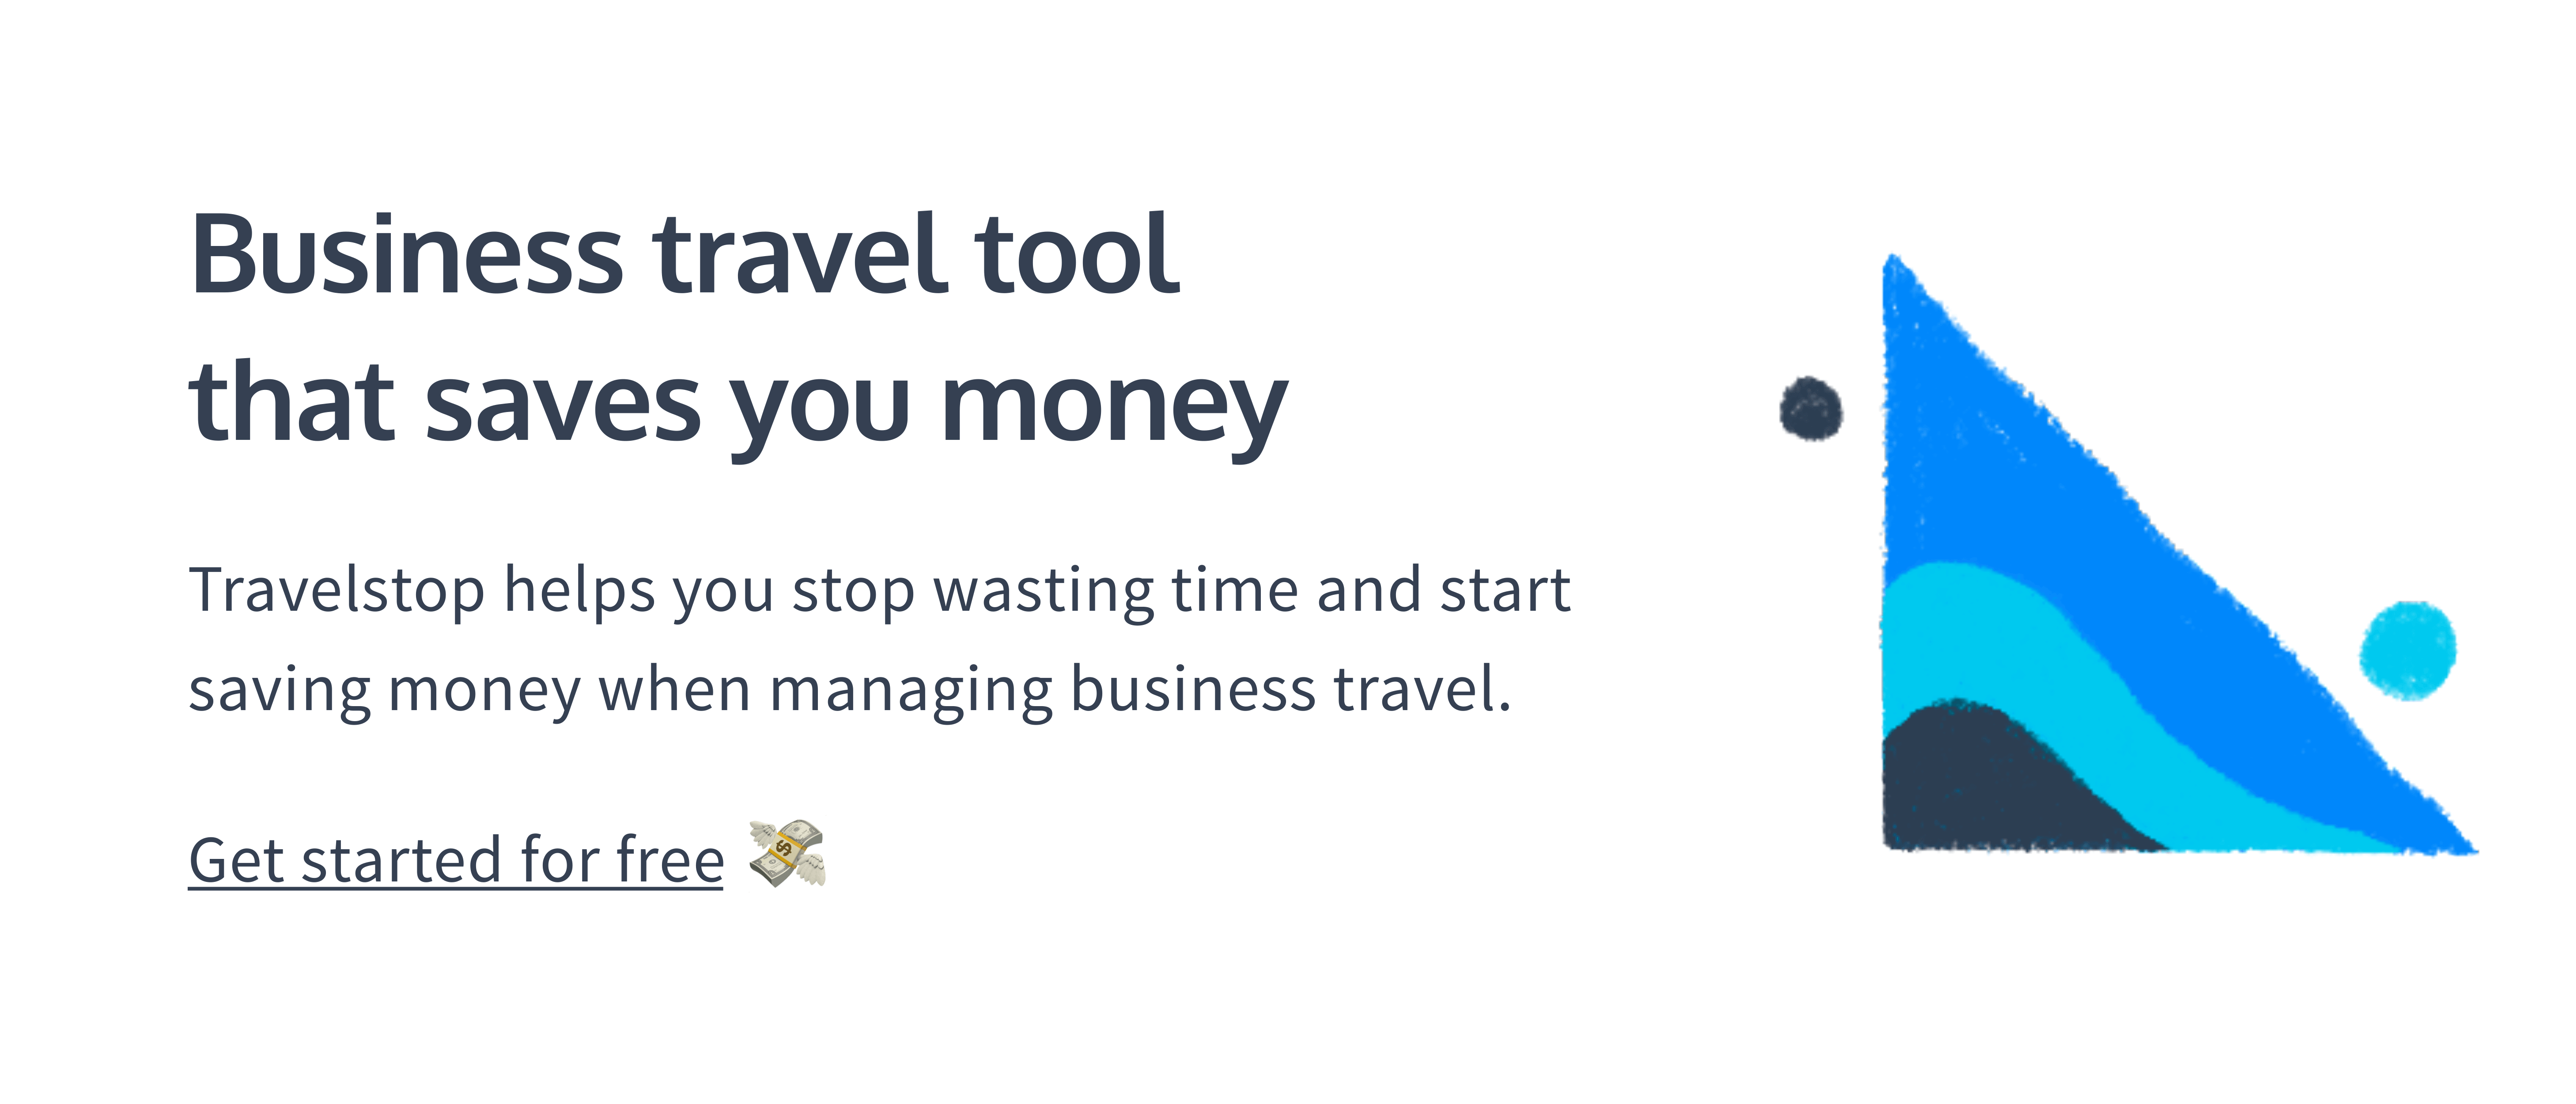 travelstop-save-money-business-travel